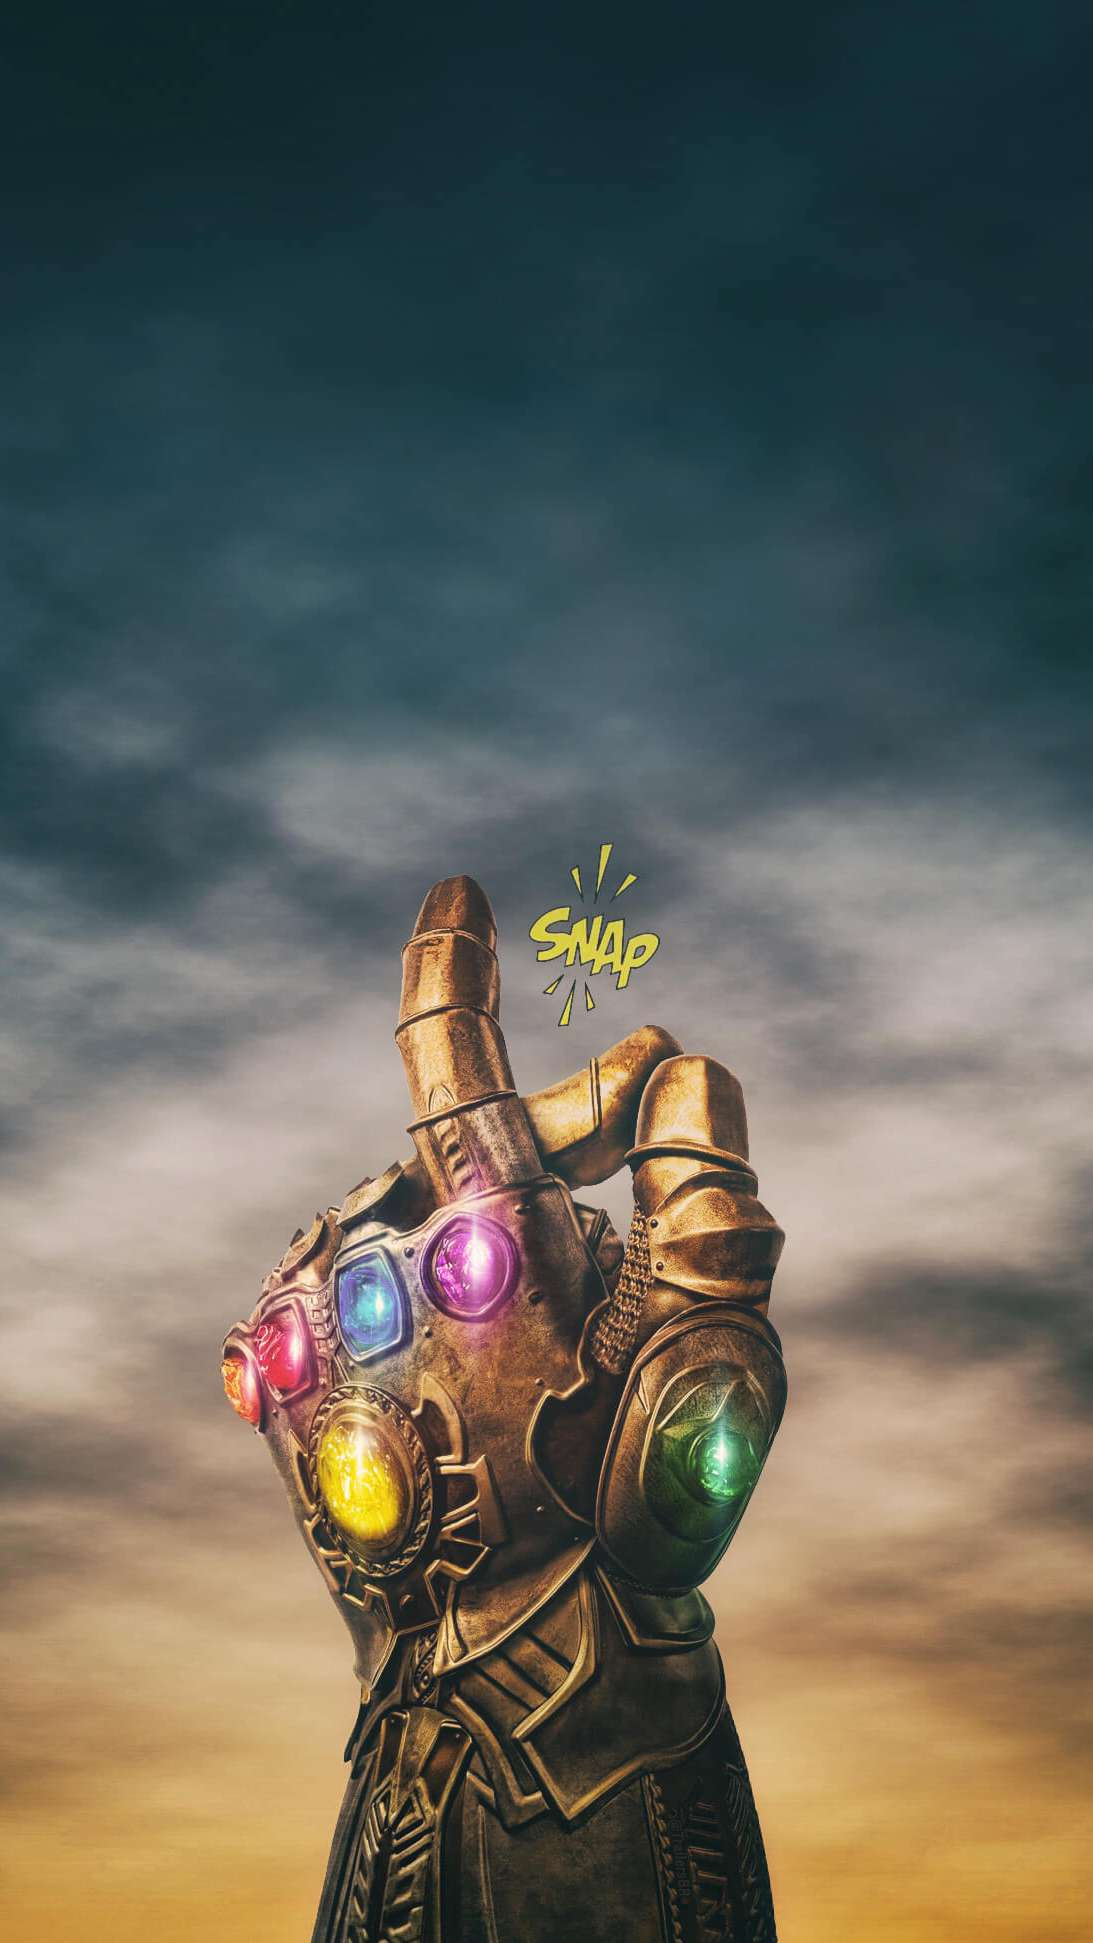 Thanos Snap iPhone Wallpaper - iPhone Wallpapers